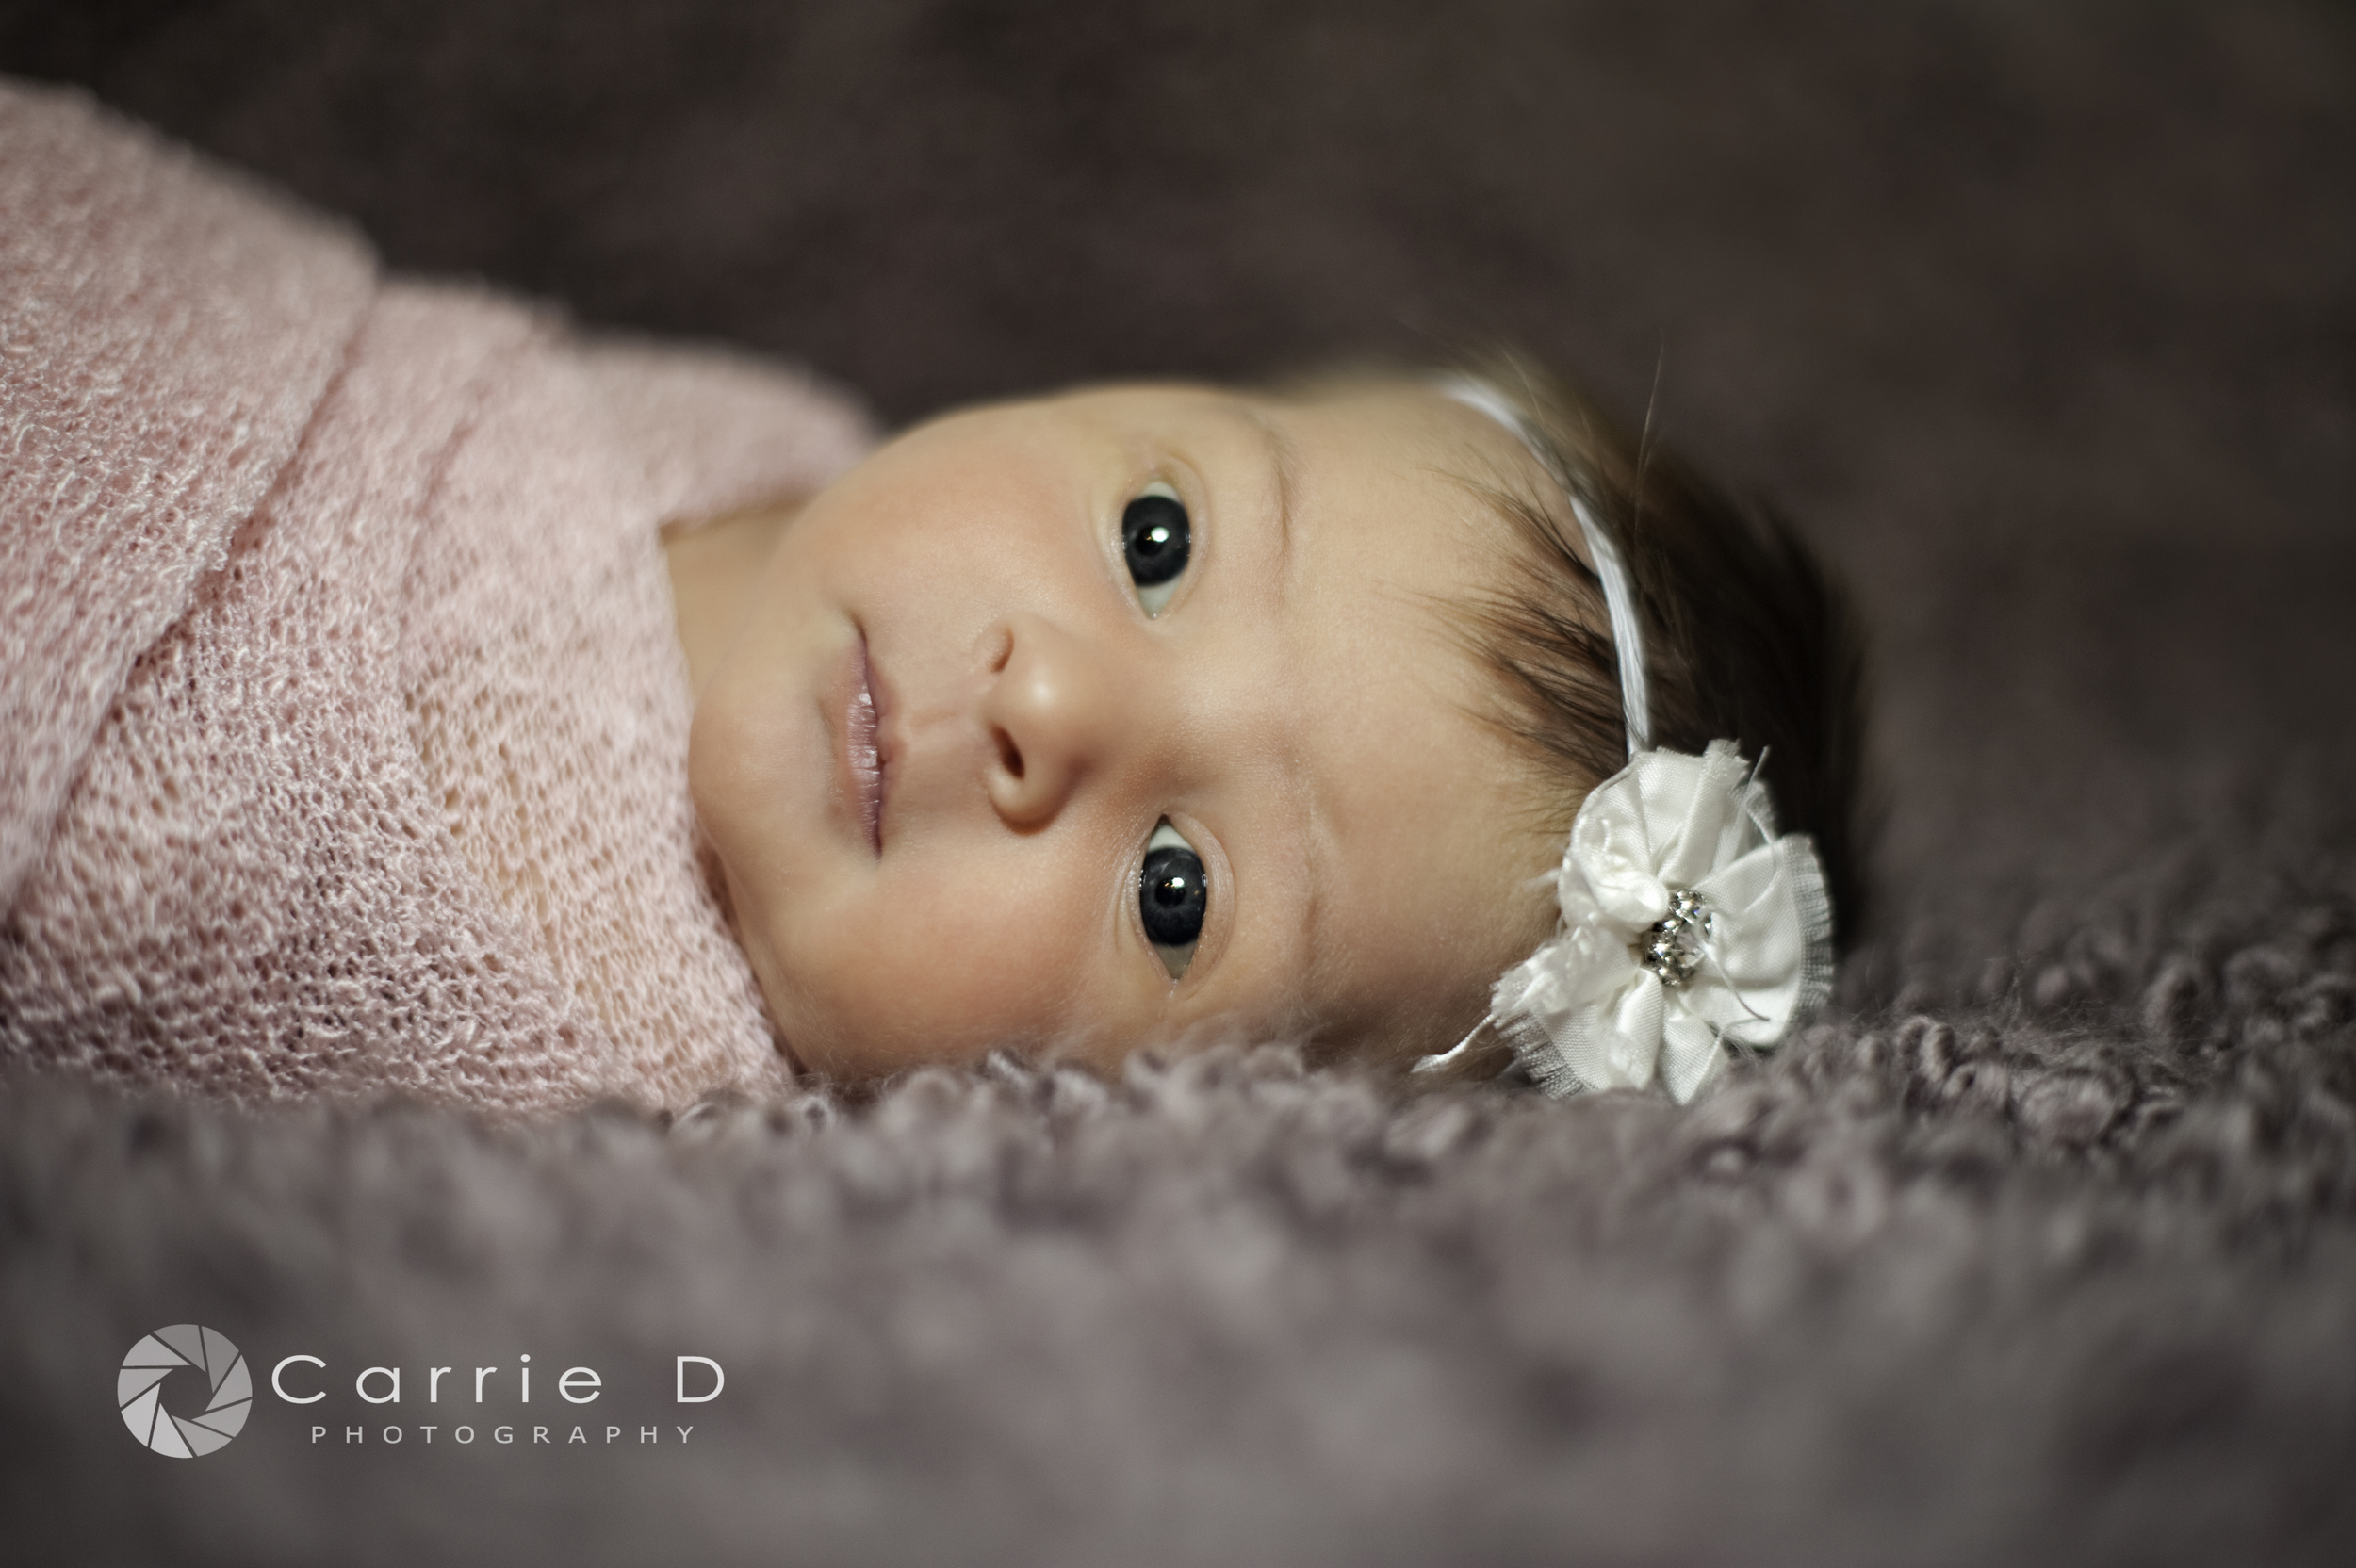 Howard County Photographer – Howard County Portrait Photographer – Howard County Newborn Photographer – Howard County Baby Photographer - Howard County Infant Photographer Howard County Child Photographer – Howard County Sibling Photographer – Howard County Natural Light Photographer – Howard County Lifestyle Photographer – Howard County Natural Light Portrait Photographer - Maryland Photographer – Maryland Portrait Photographer – Maryland Newborn Photographer – Maryland Child Photographer – Maryland Sibling Photographer – Maryland Natural Light Photographer – Maryland Lifestyle Photographer – Maryland Natural Light Portrait Photographer - Maryland Baby Photographer - Maryland Infant Photographer - Annabelle_DSC_4961B